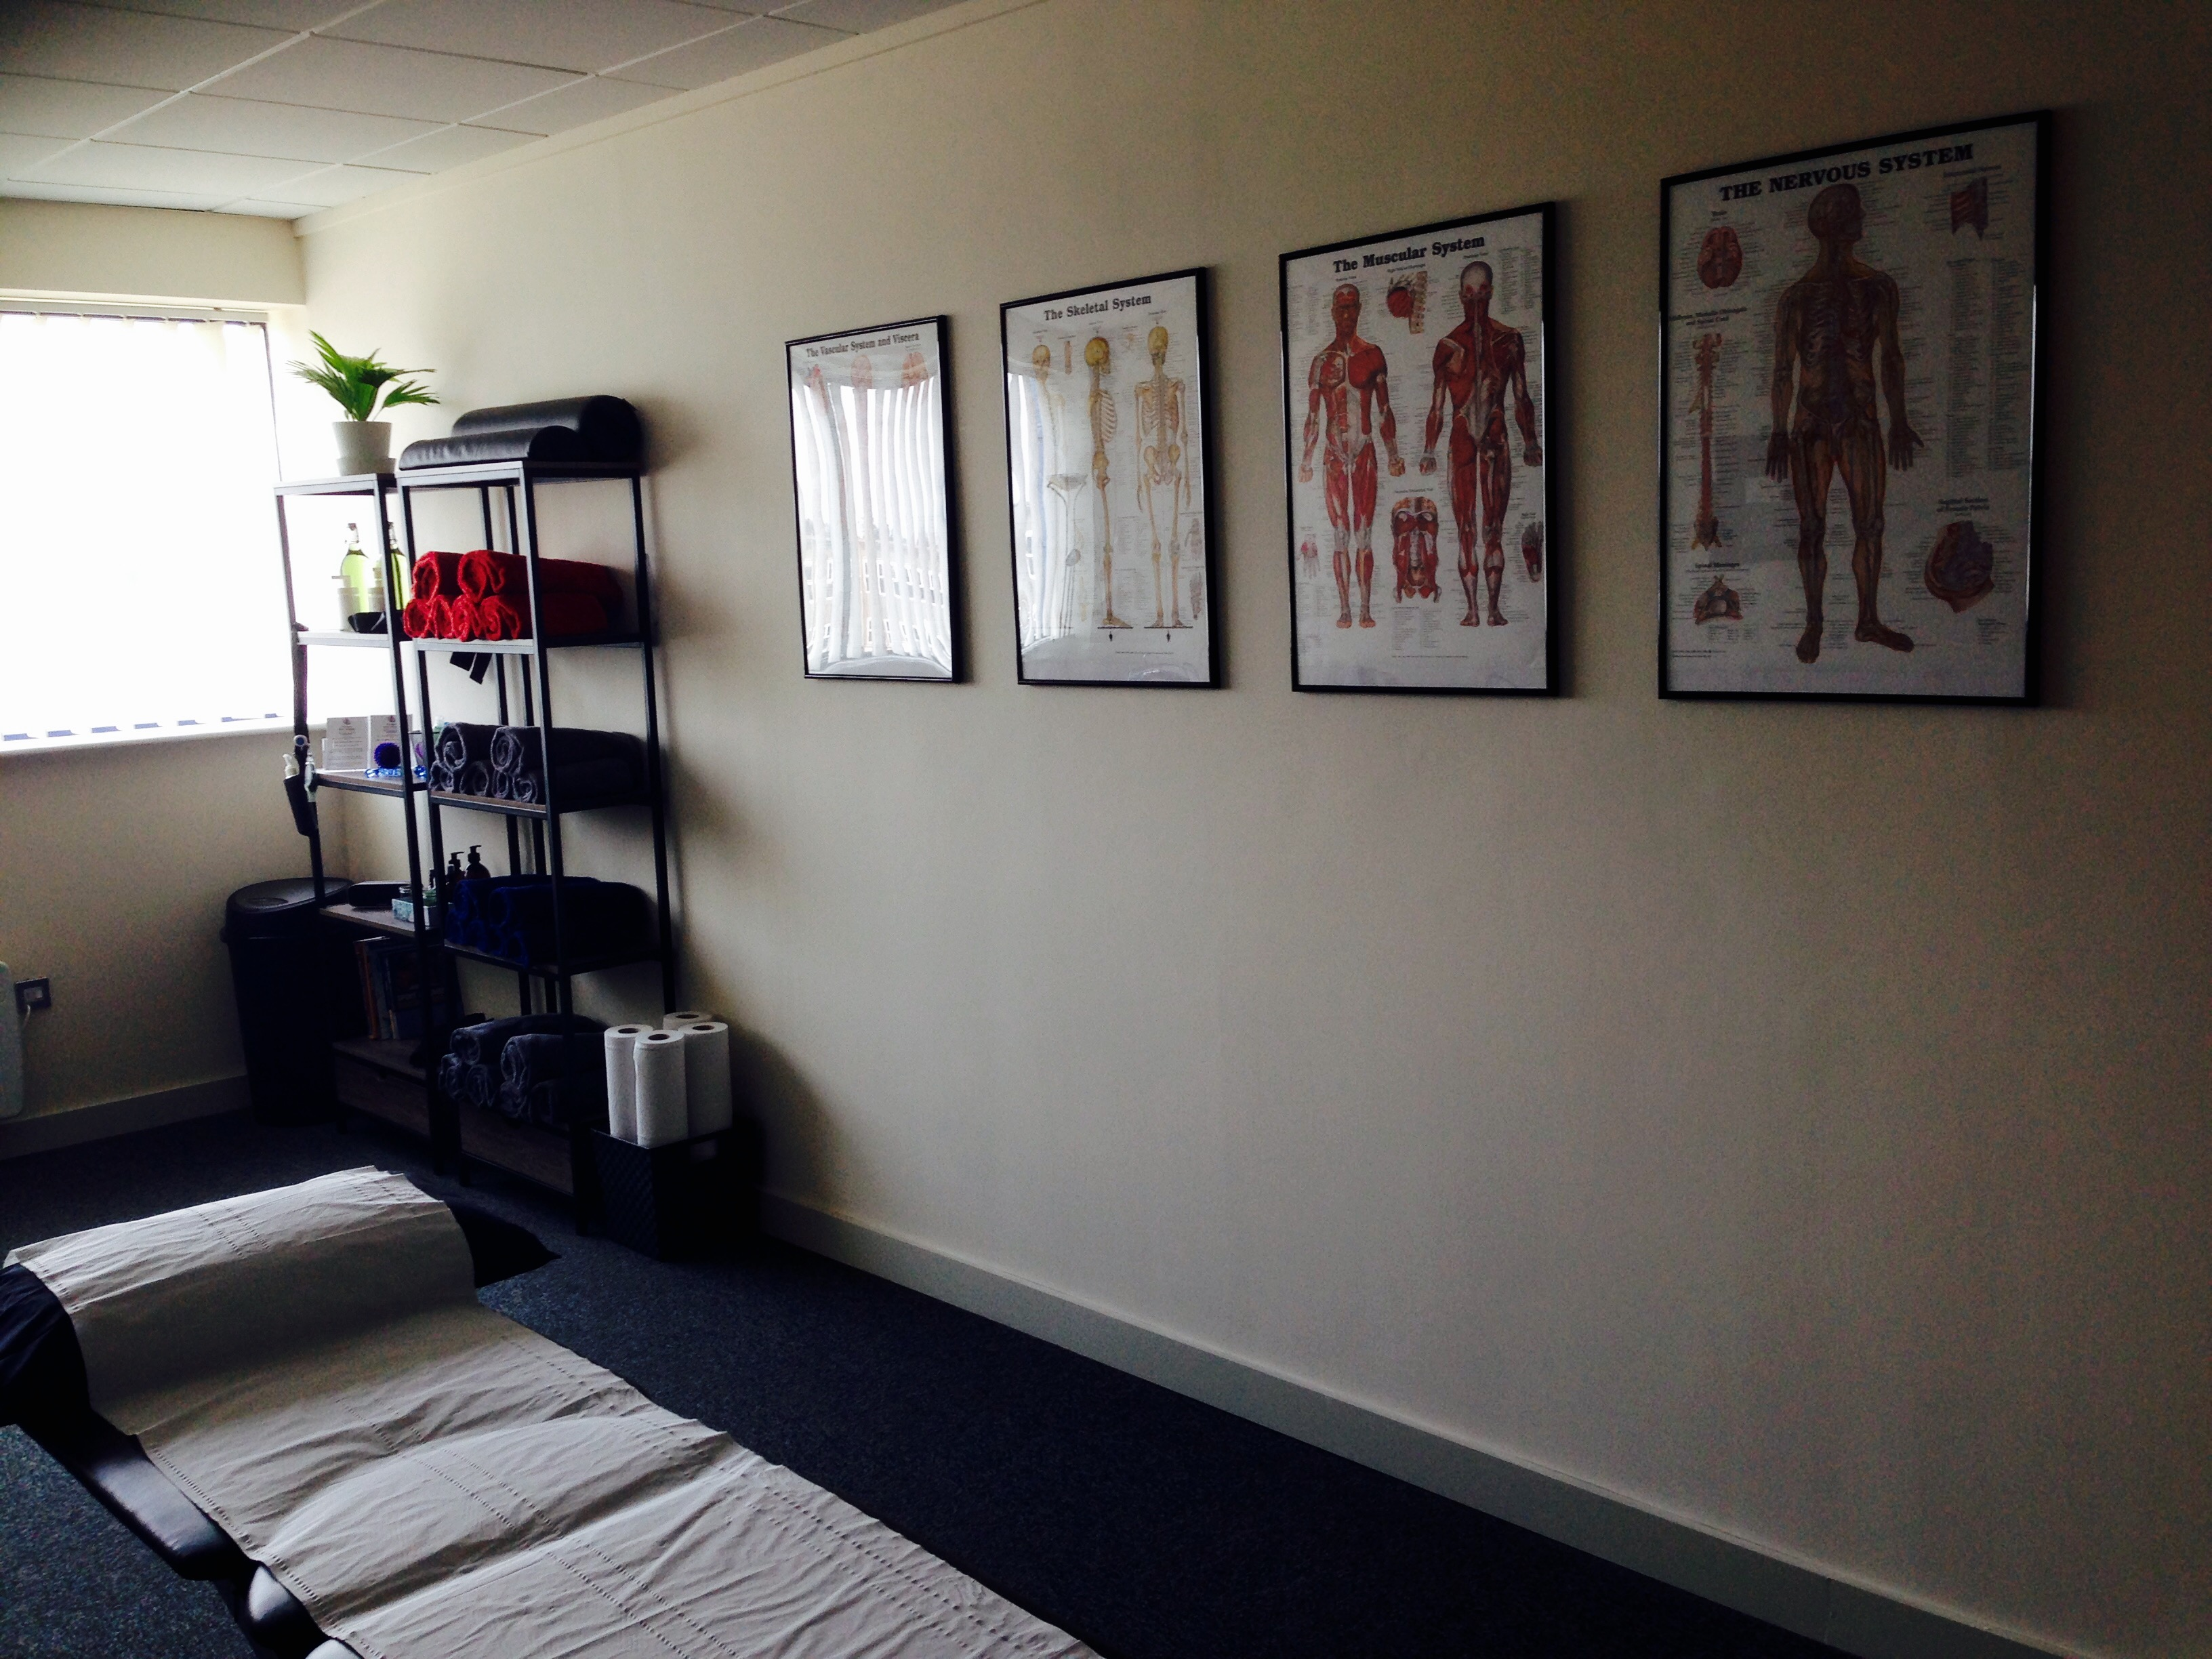 Podium Sport Massage - Liverpool, Merseyside L24 9HJ - 07949 874771 | ShowMeLocal.com